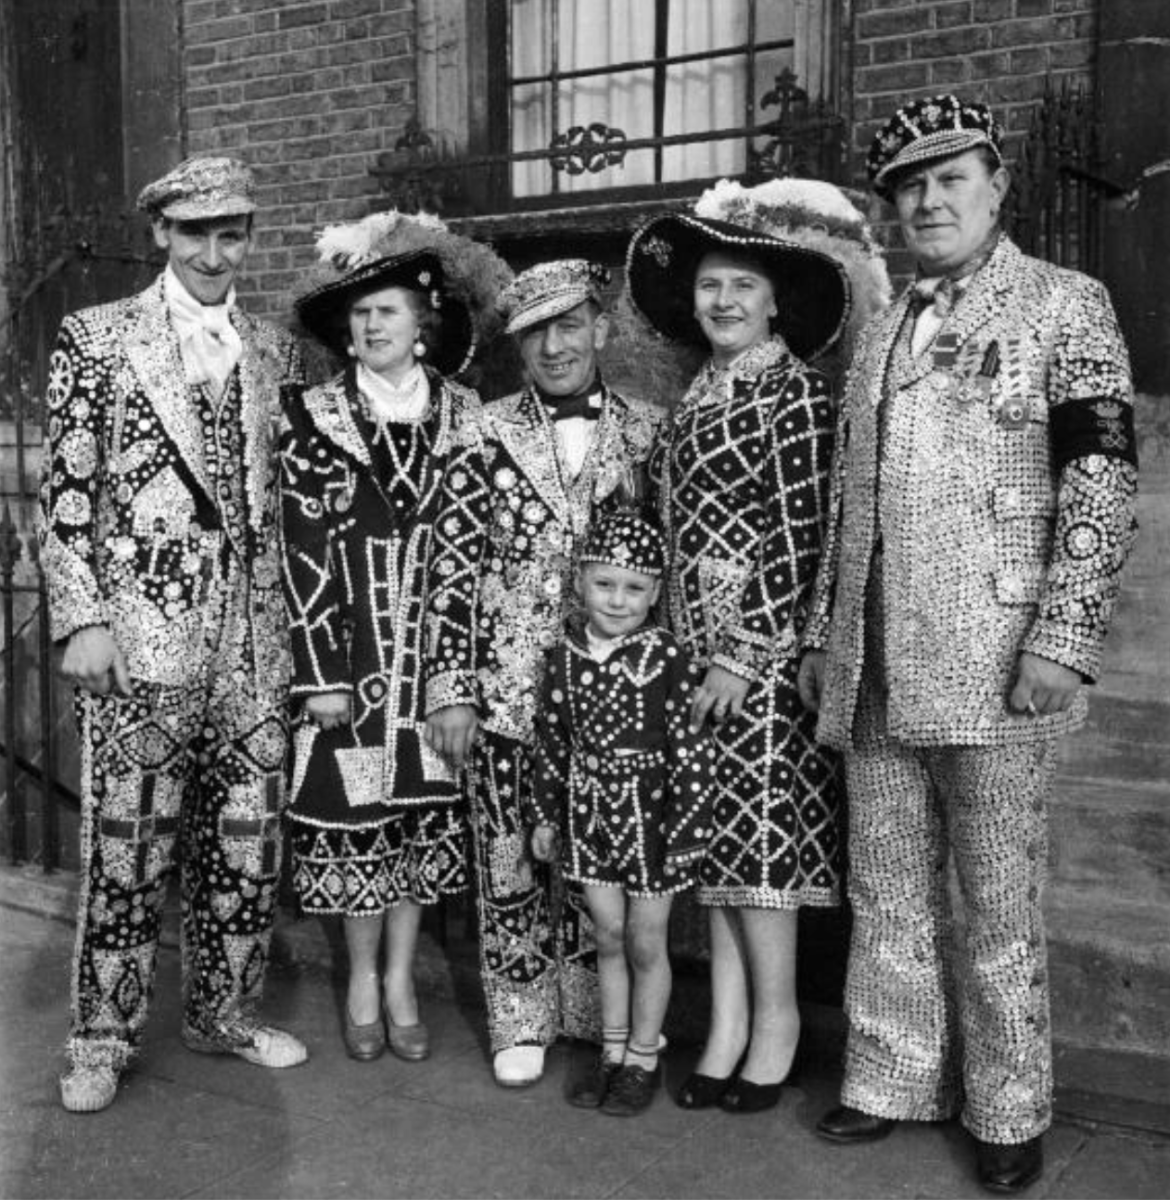 London Pearlies - East End Photography (c) Getty Images